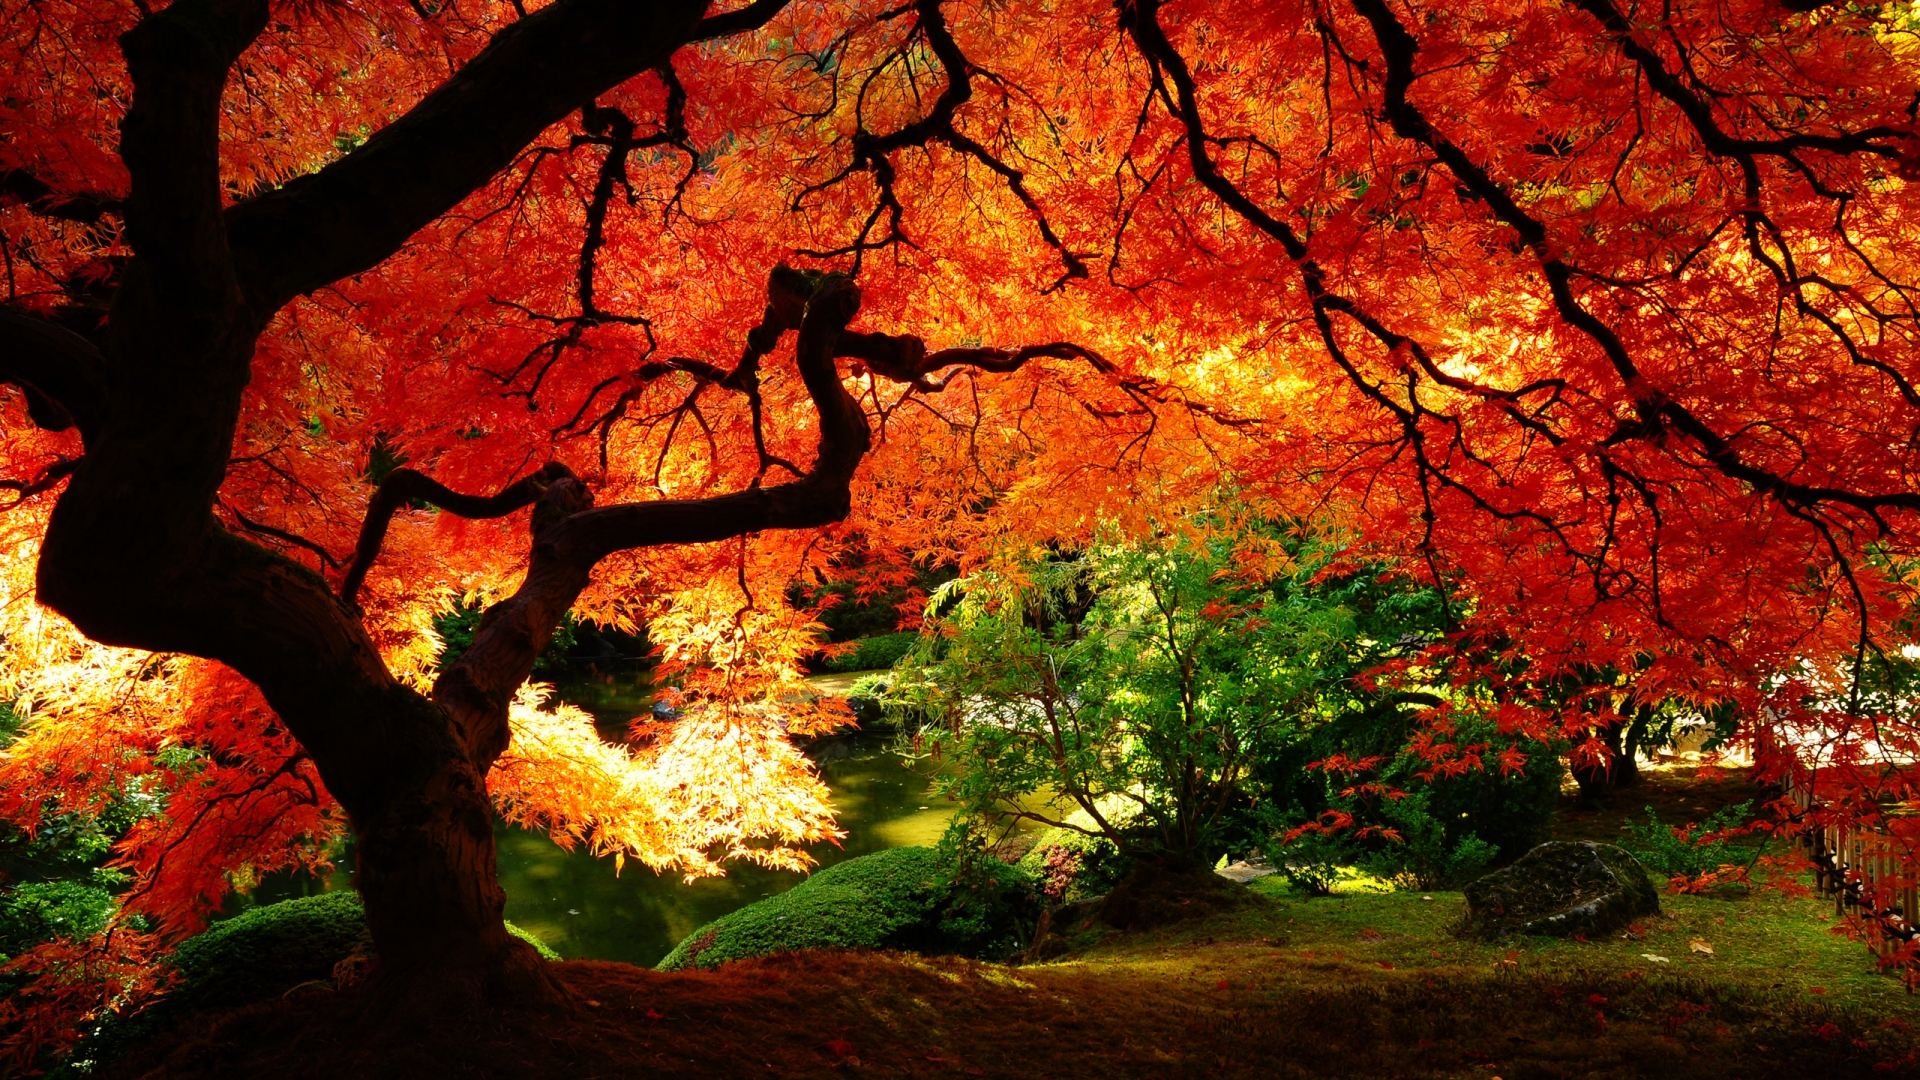 Autumn - Red Leafed Tree